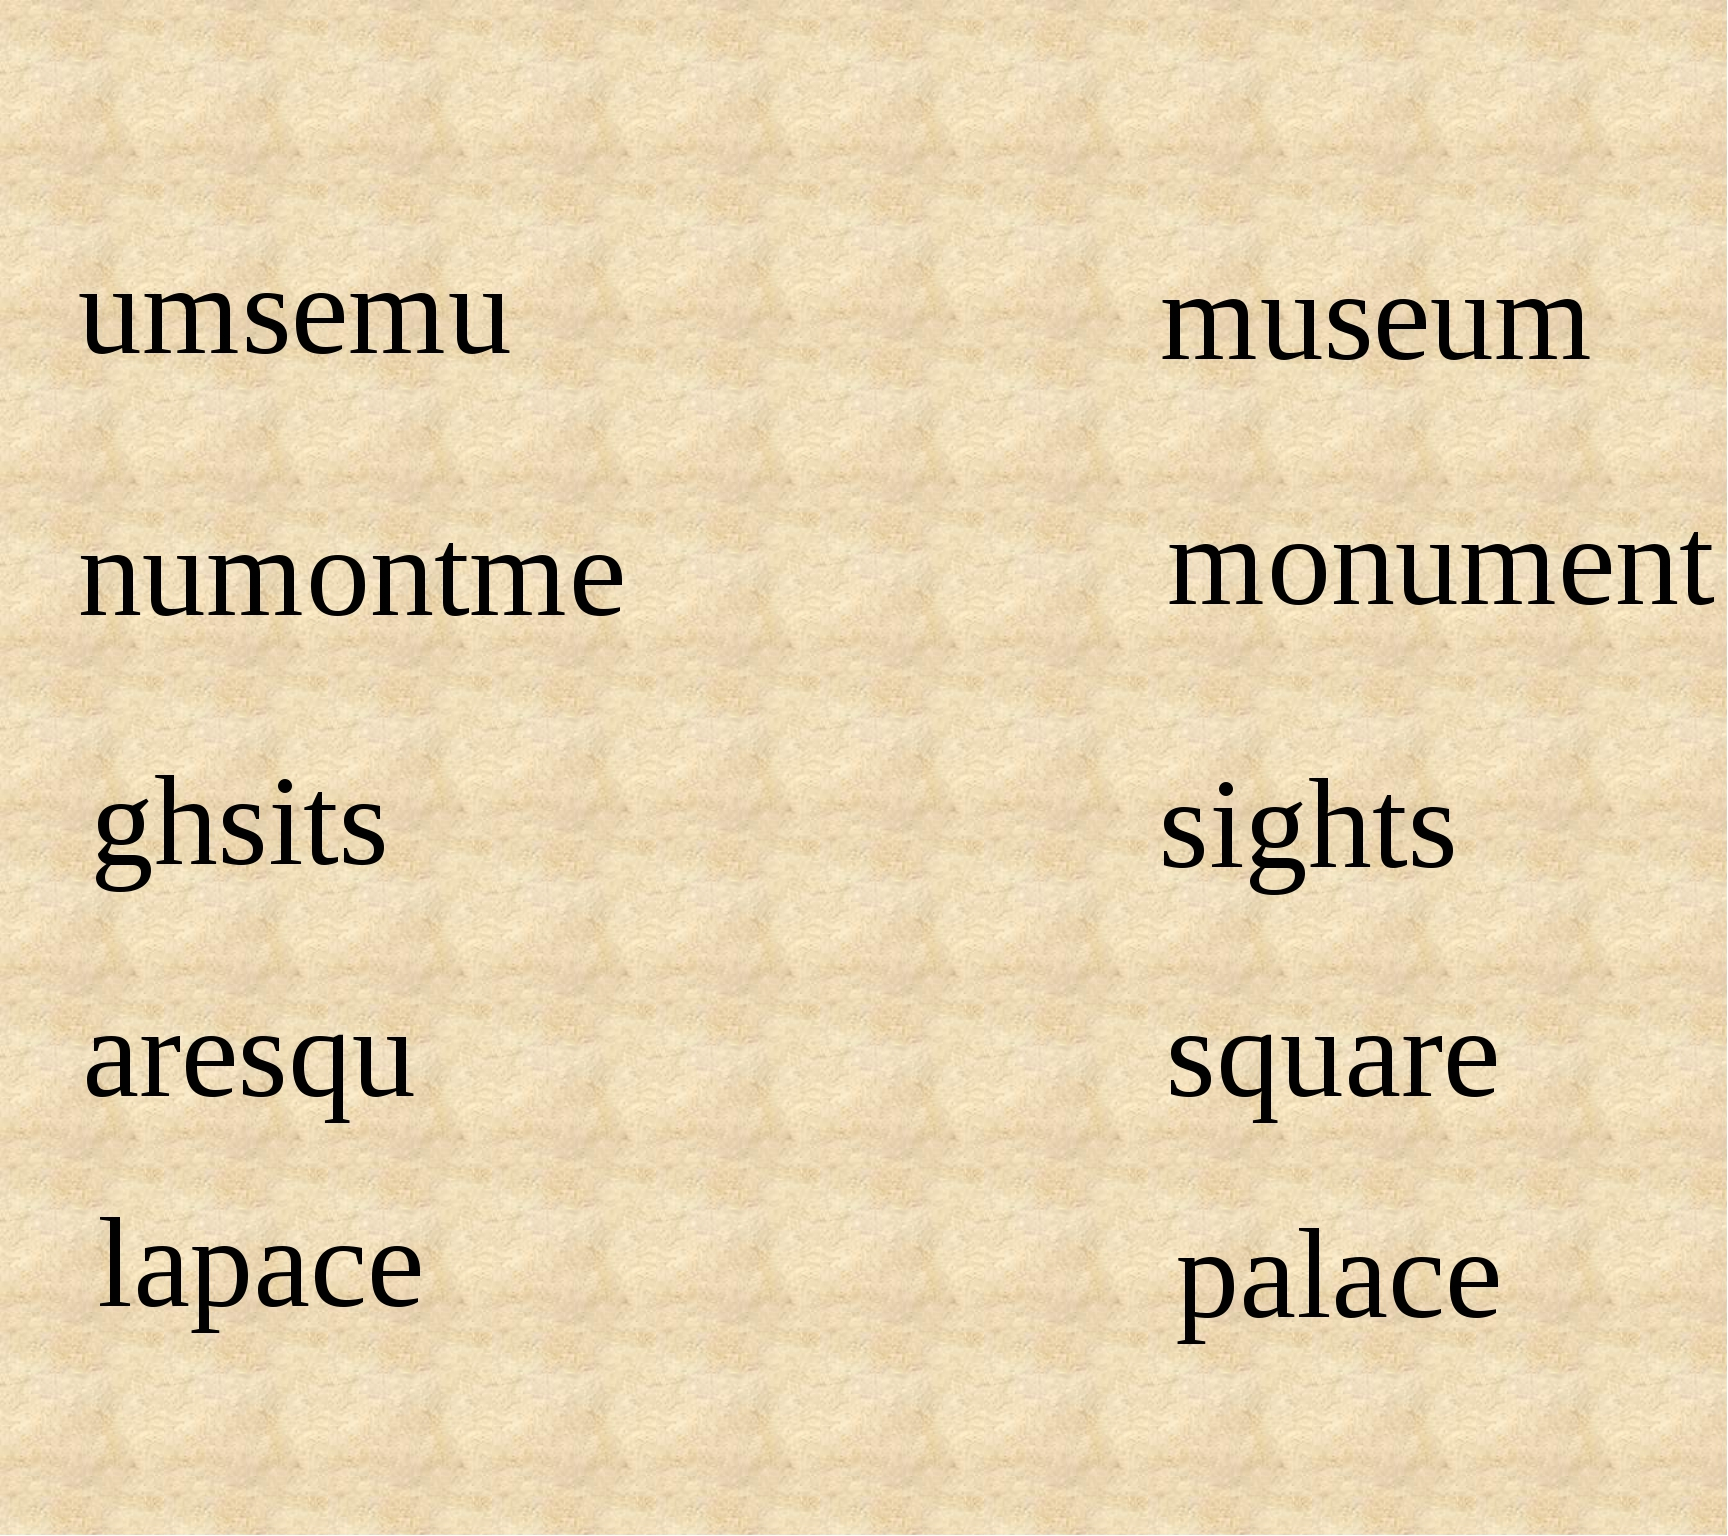 umsemu numontme ghsits aresqu lapace museum monument sights square palace